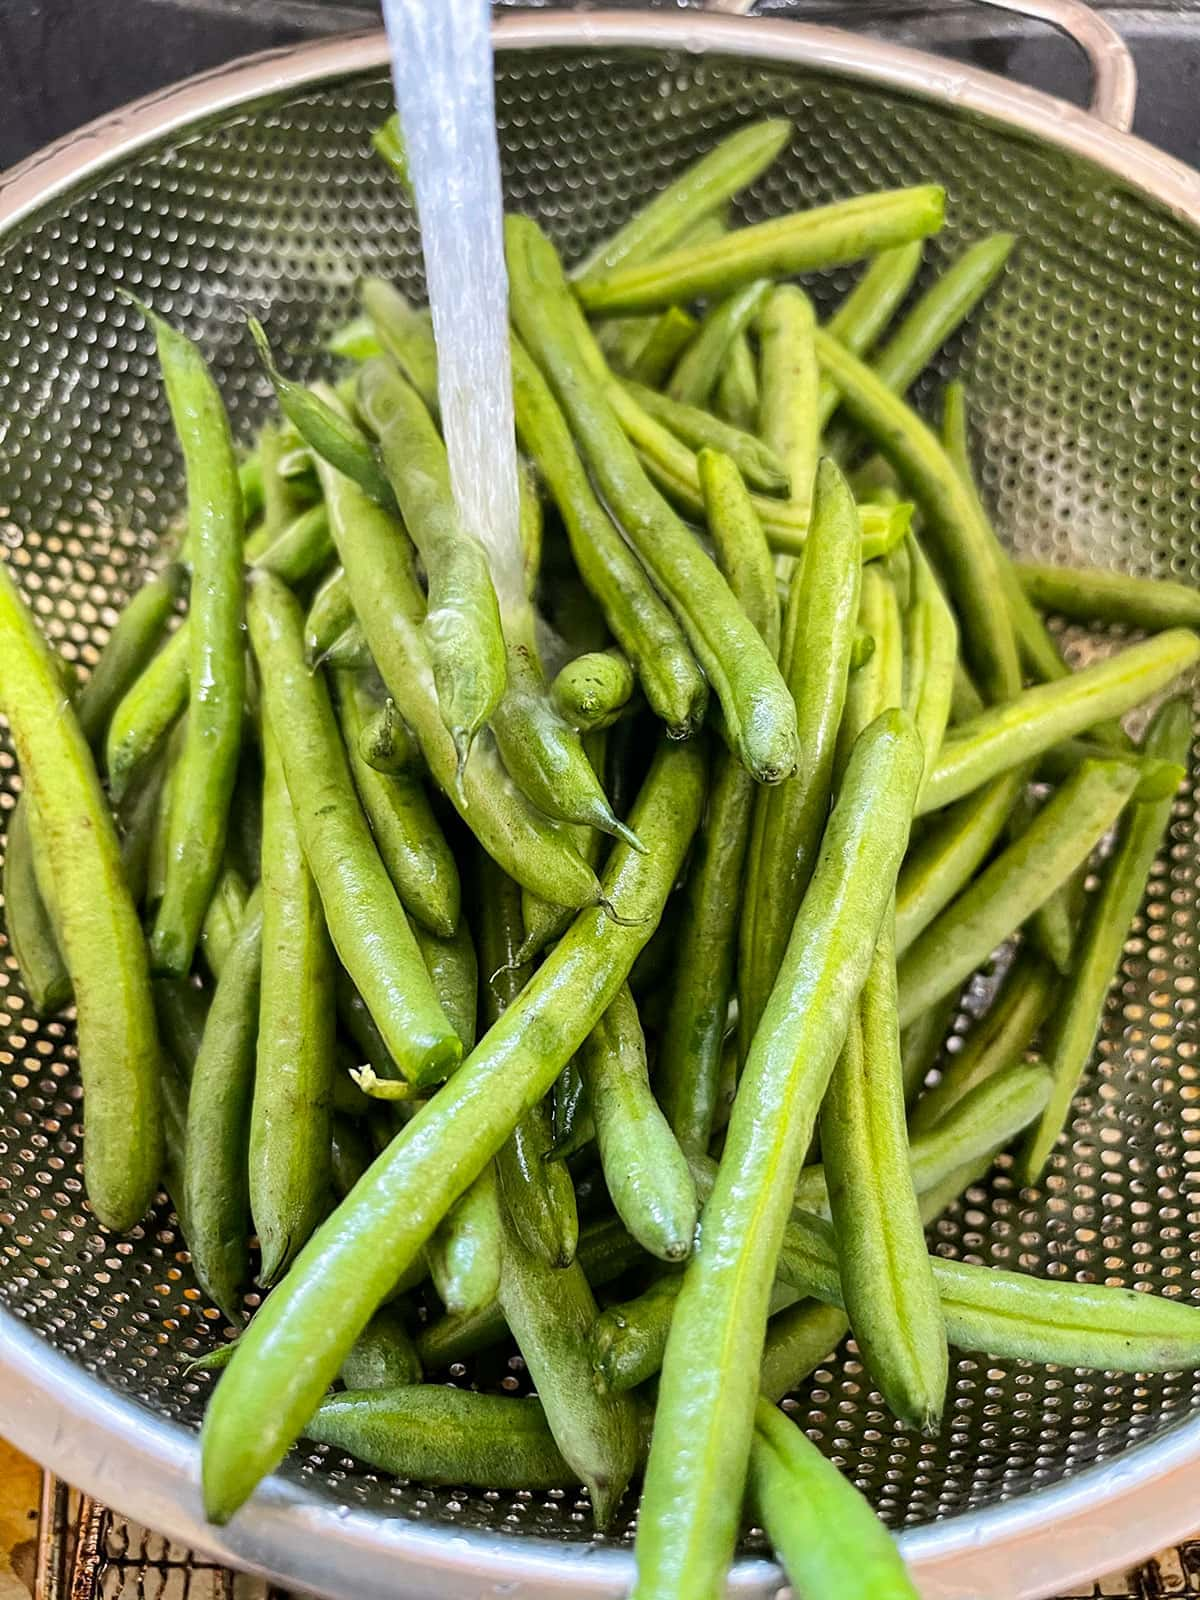 green beans being washed